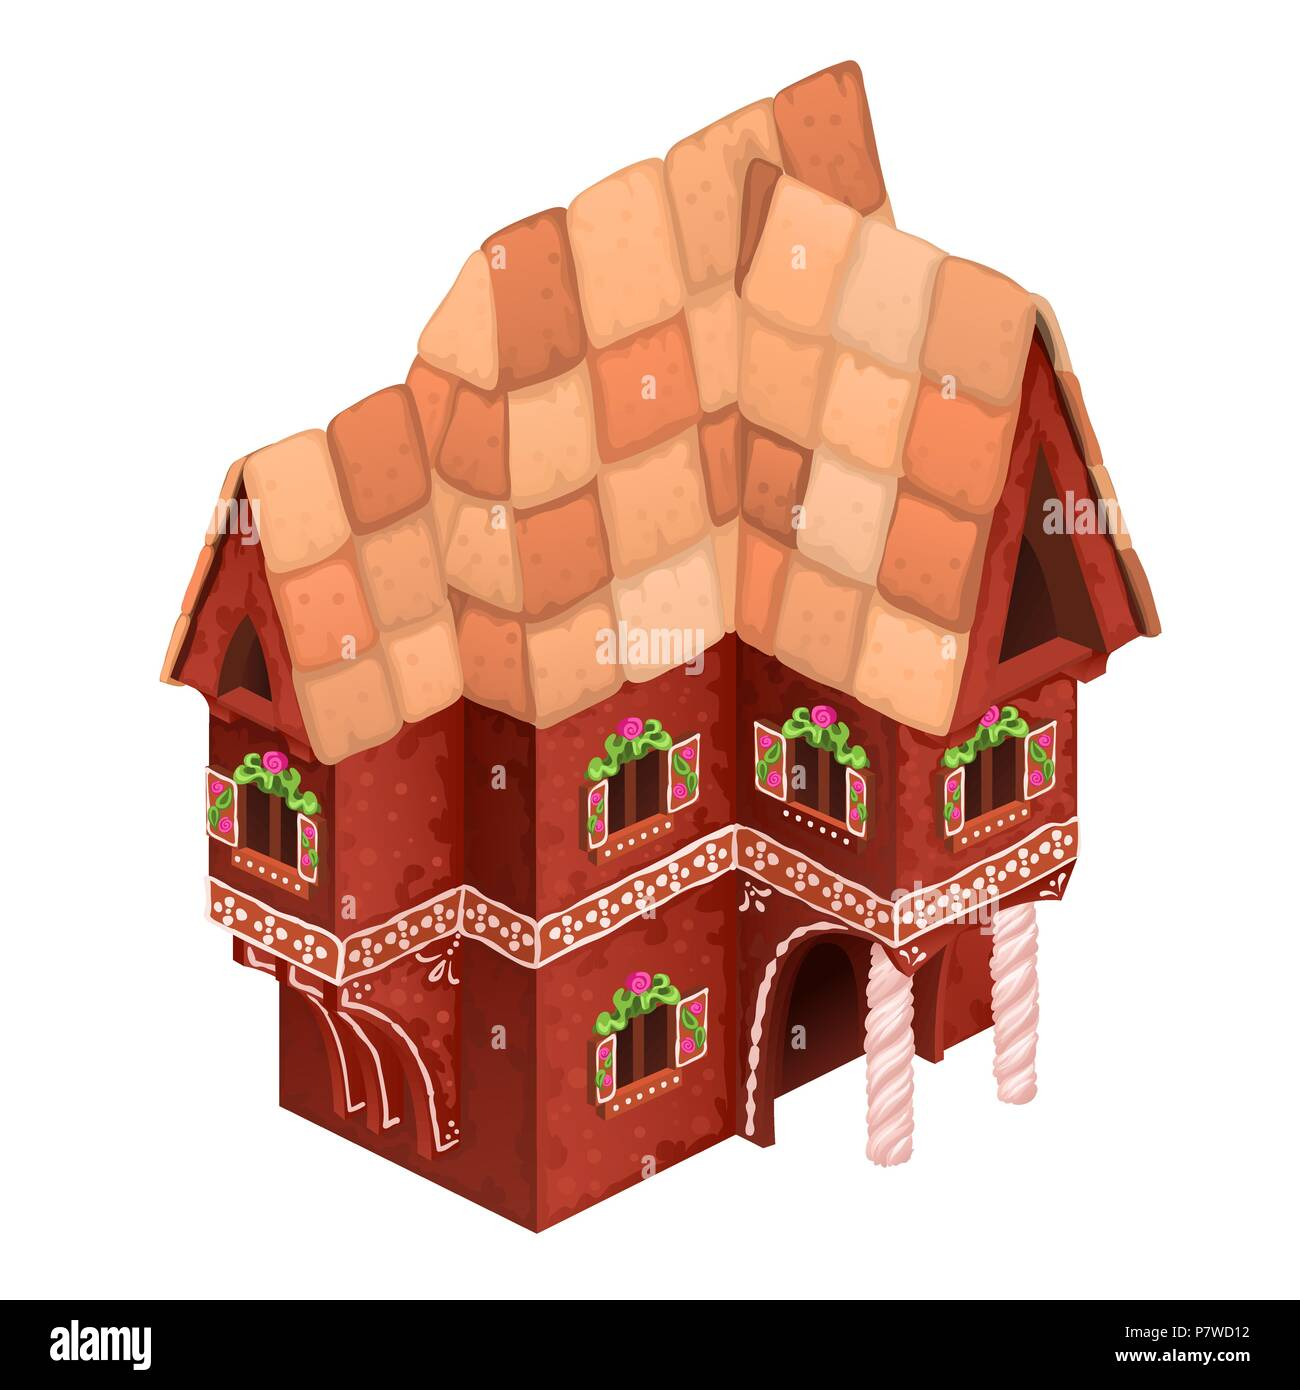 Toy two-storey house of red color. Gingerbread house isolated on white background. Vector cartoon close-up illustration. Stock Vector